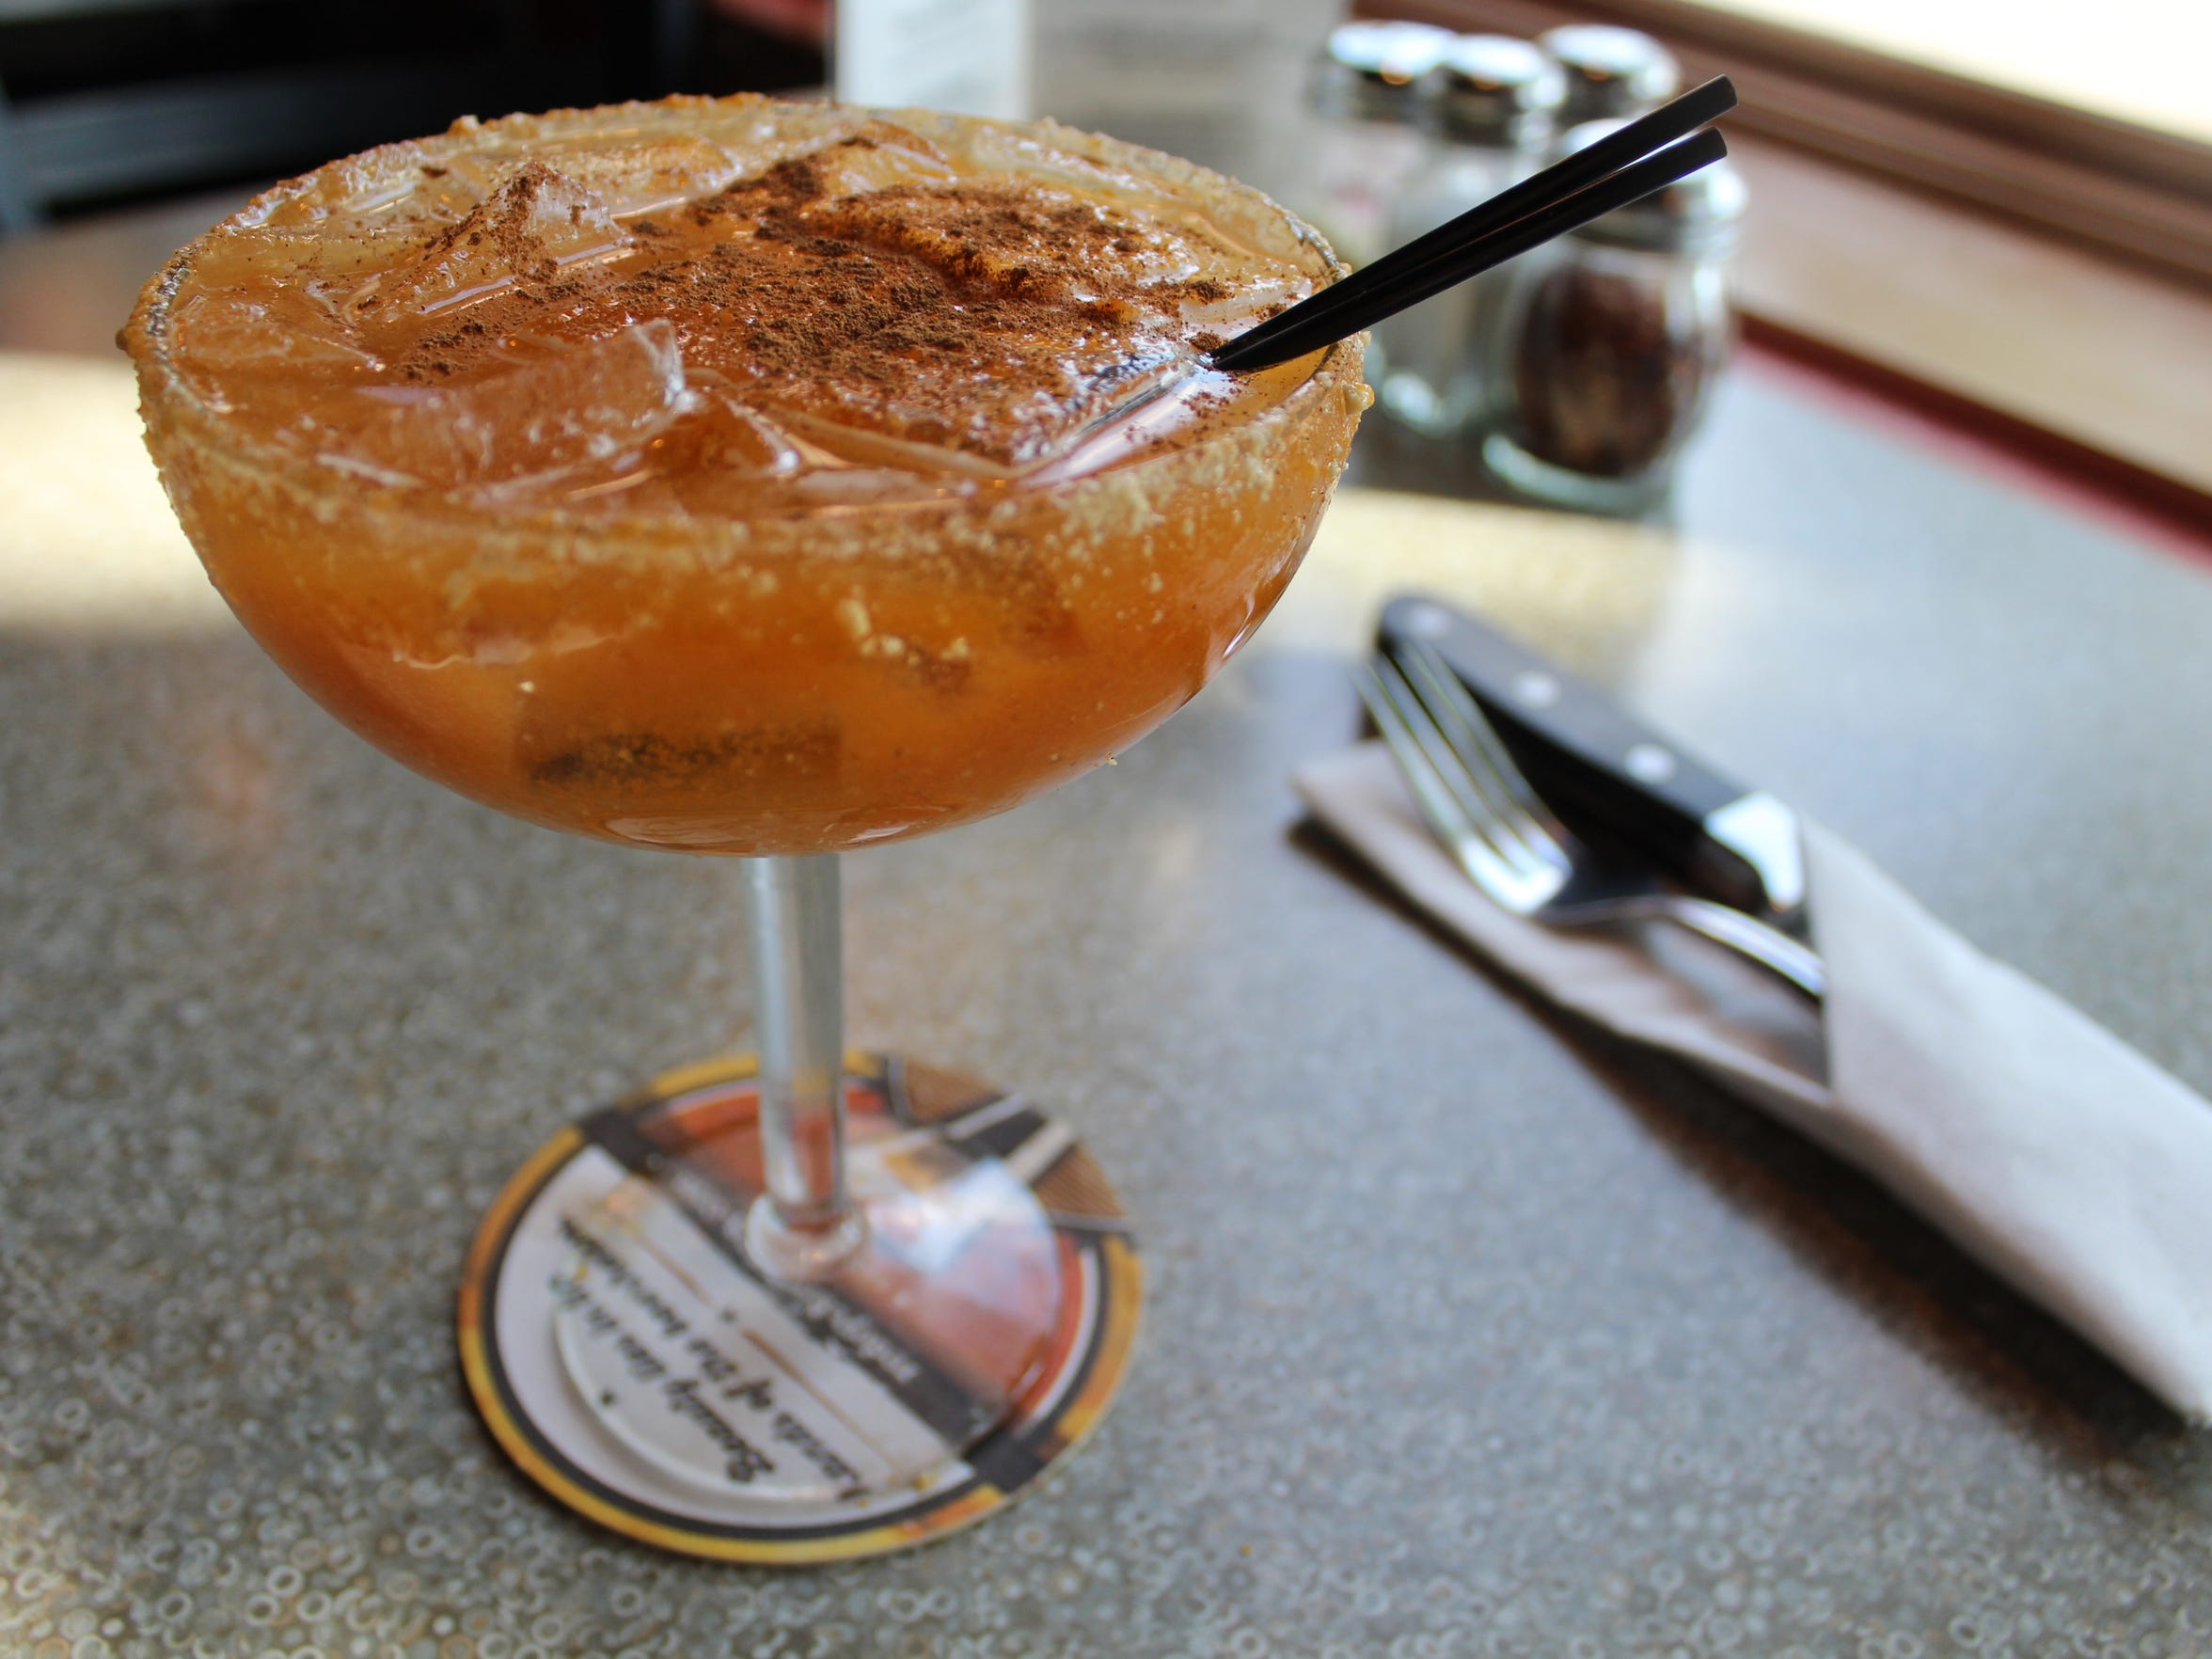 Pictured is a 'pumperita' from Red Eye Brewing Co. The pumpkin margarita is one of the several seasonal, pumpkin-inspired drinks at the restaurant.